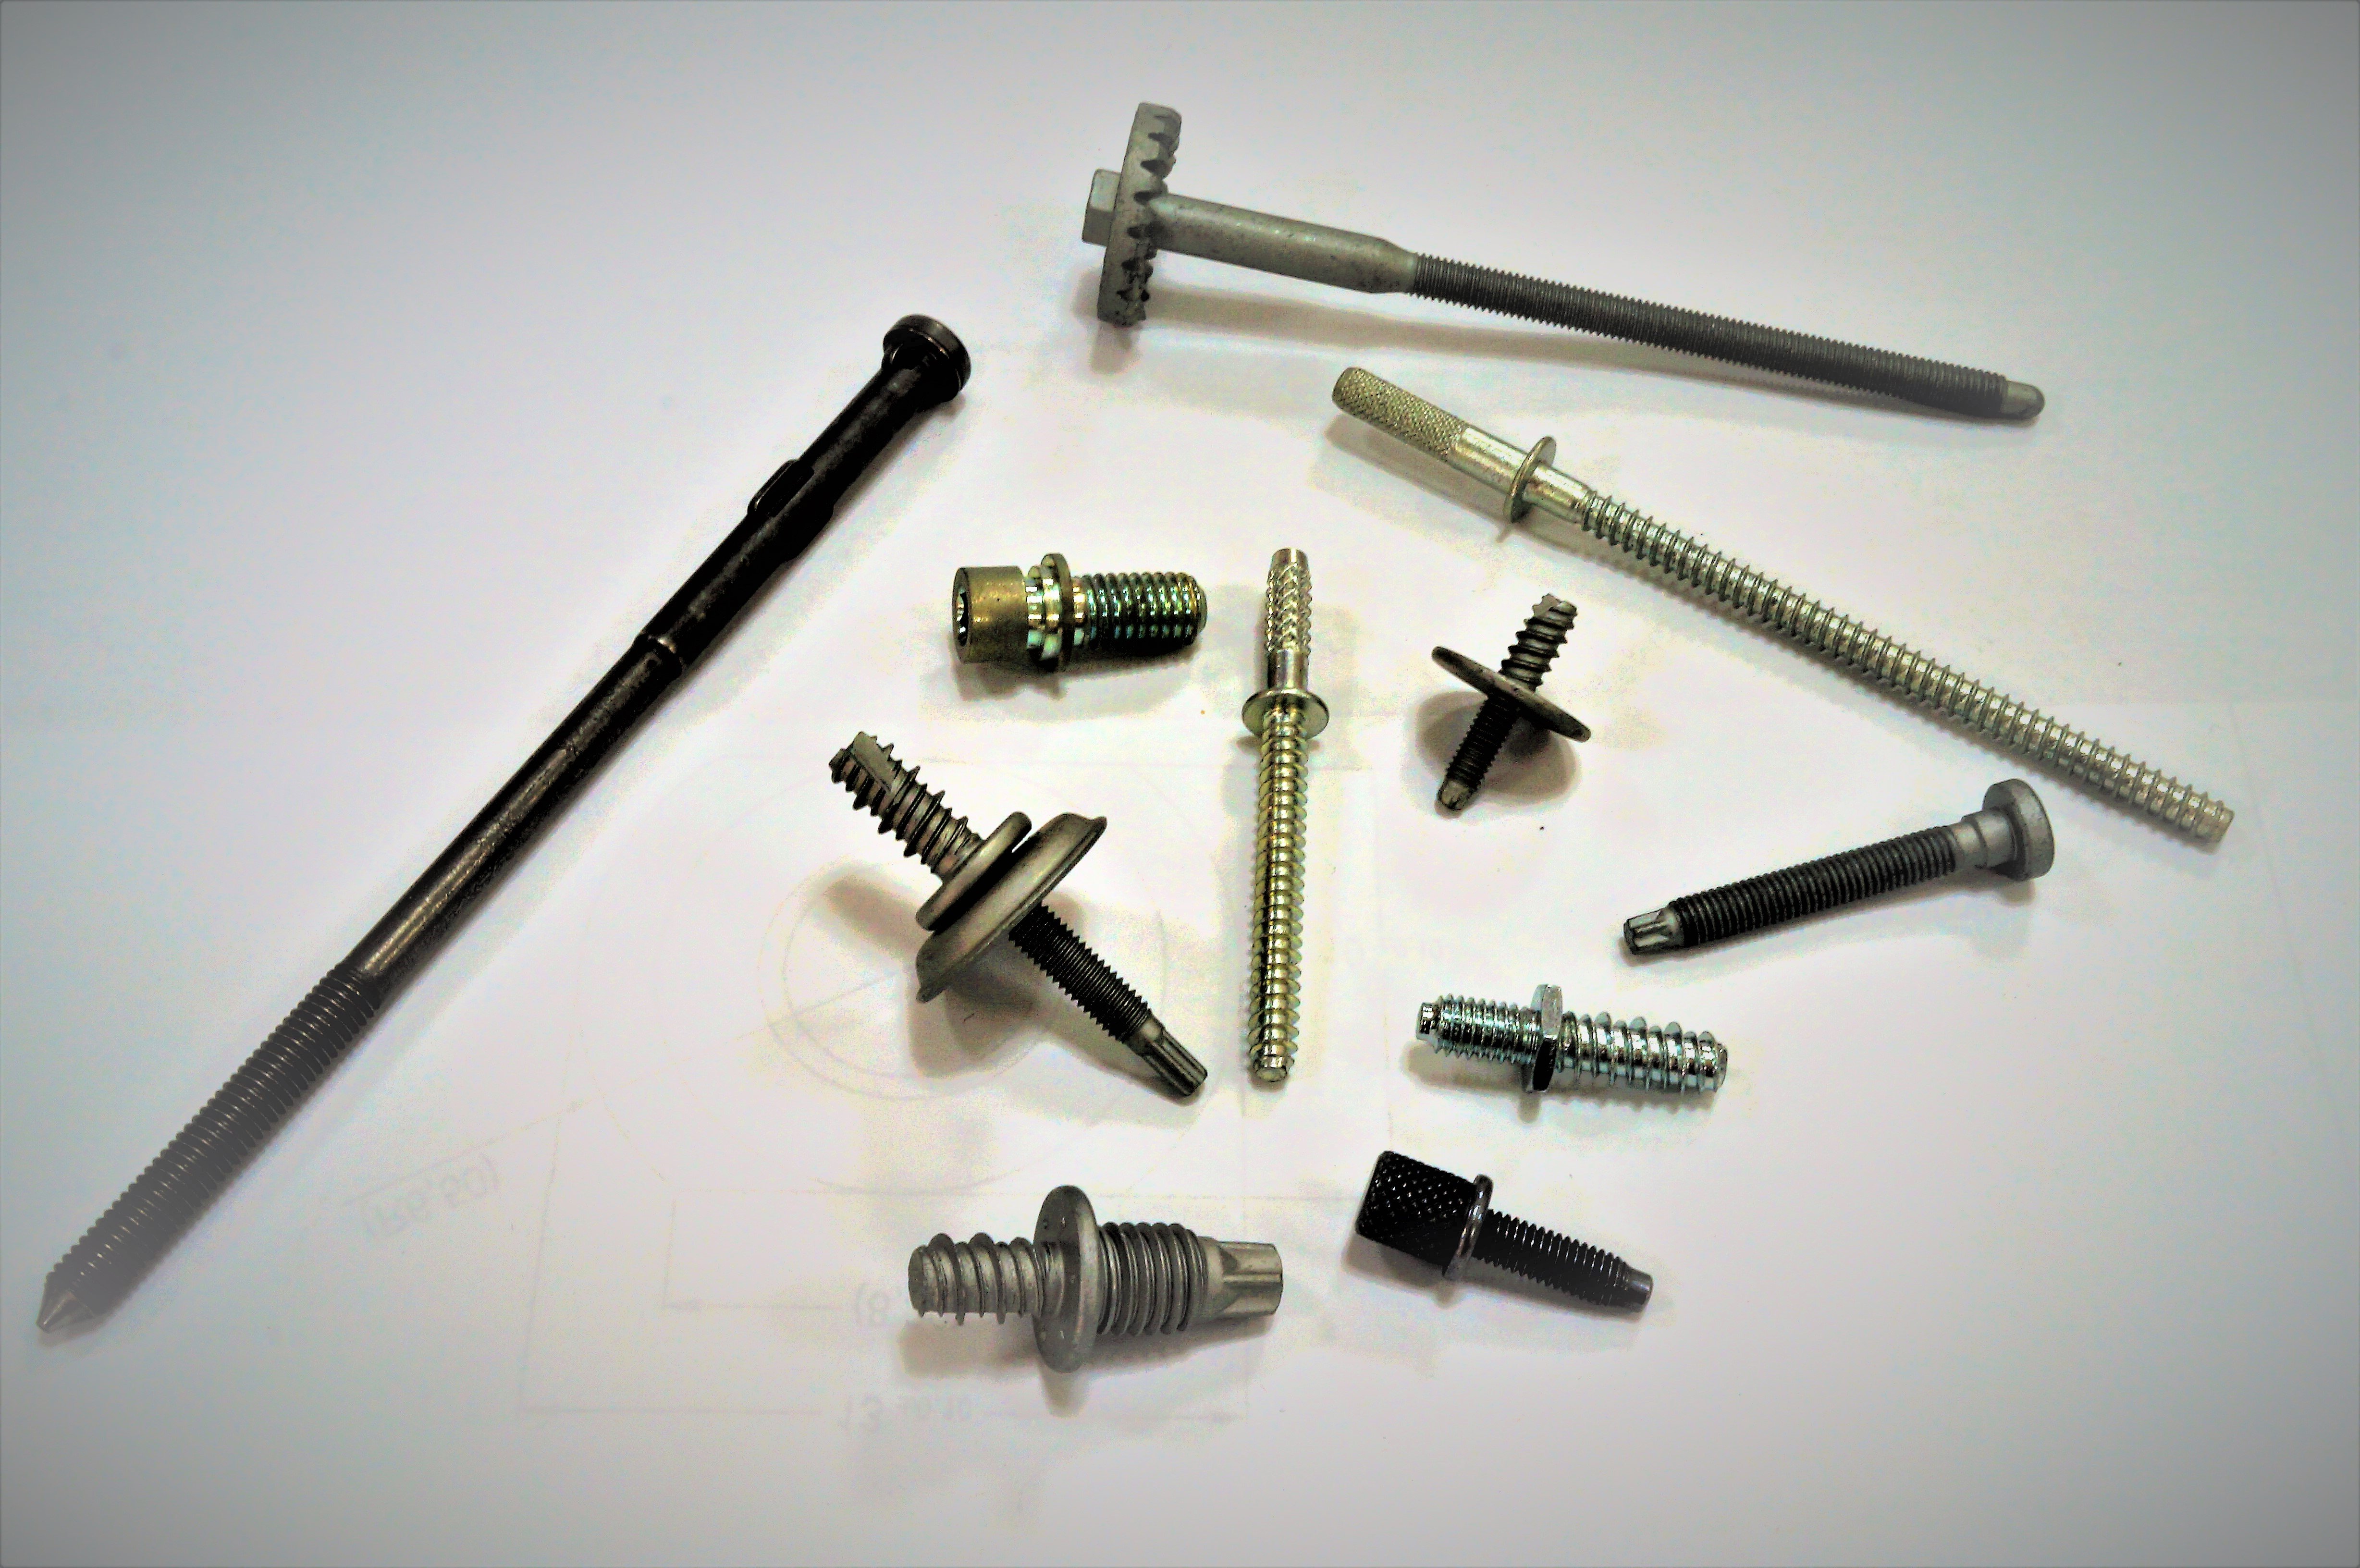 Agricultural / Tractor Adjust Screw for Vehicle Fastener made by Sunny Screw Industry 三能螺栓工業股份有限公司 - MatchSupplier.com